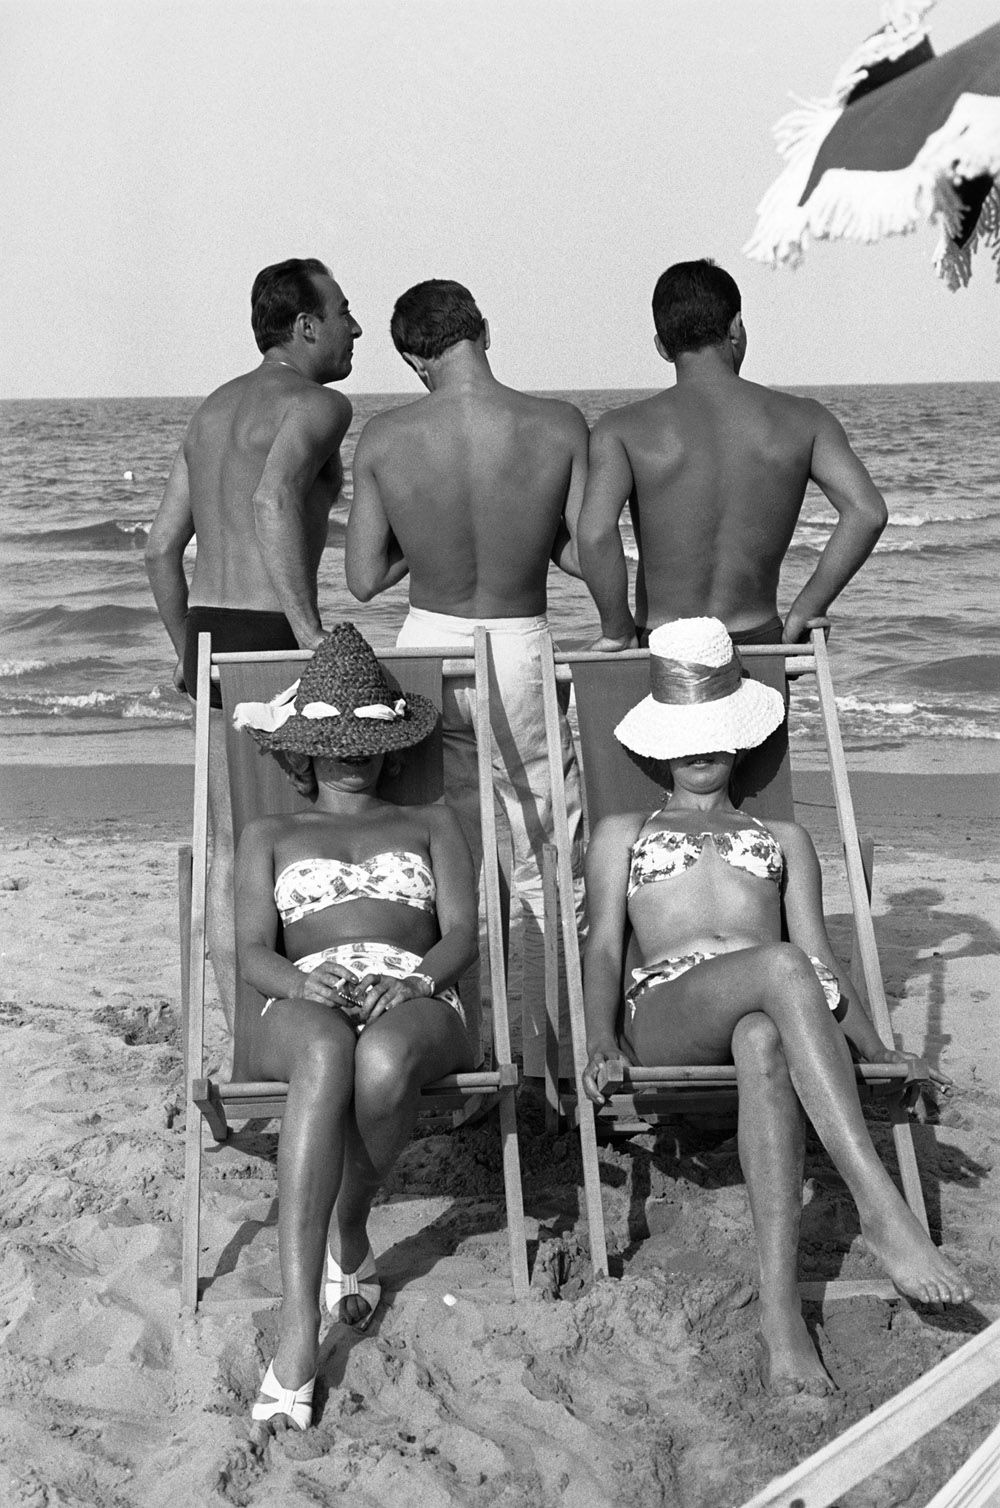 Italian beach life past and present